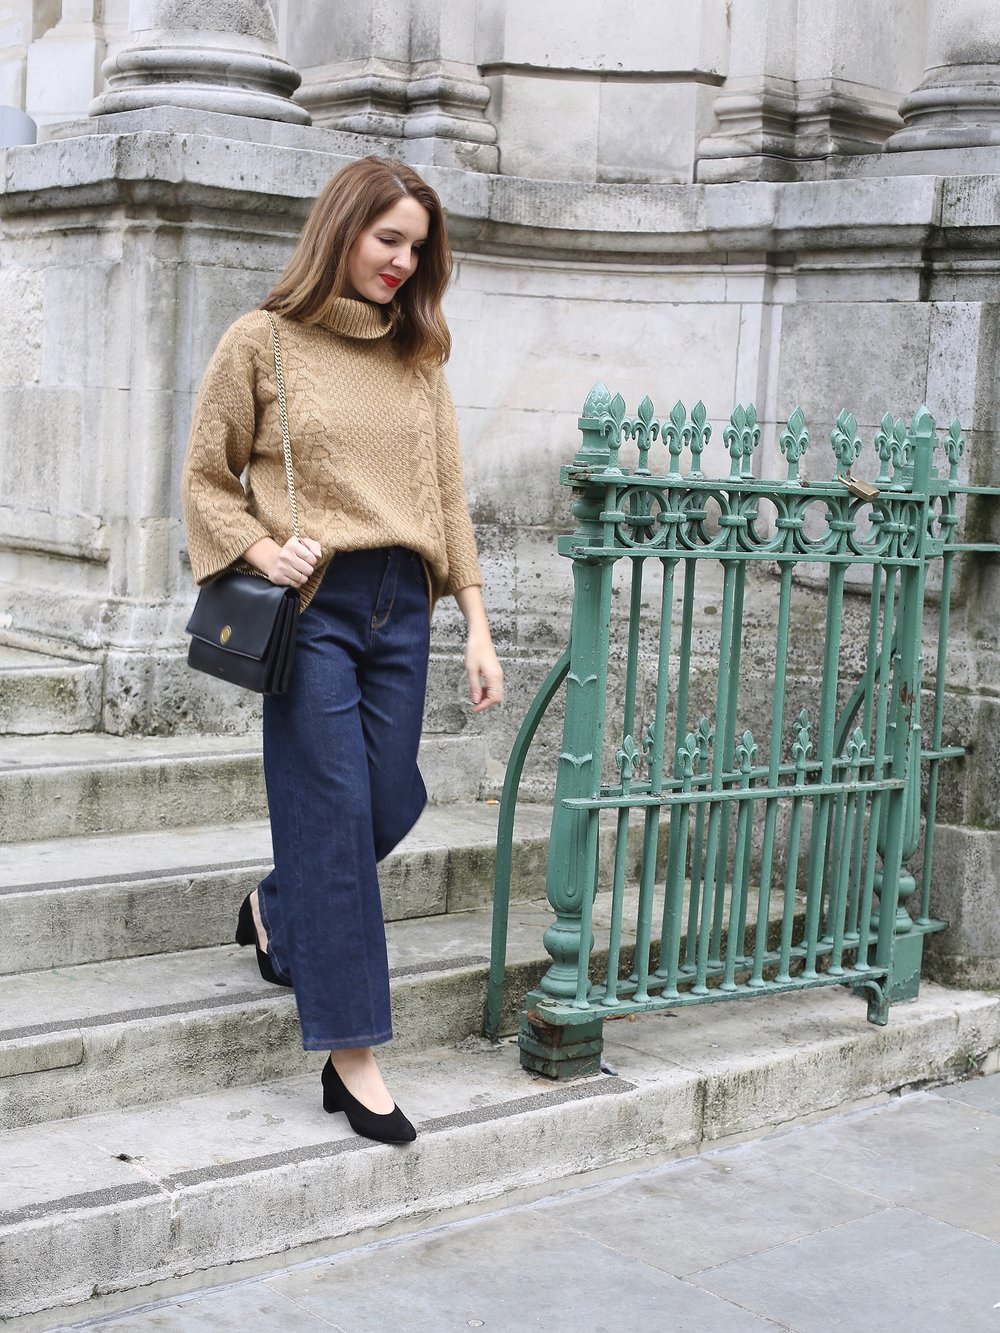 THE GROWN UP EDIT - Massimo Dutti jeans